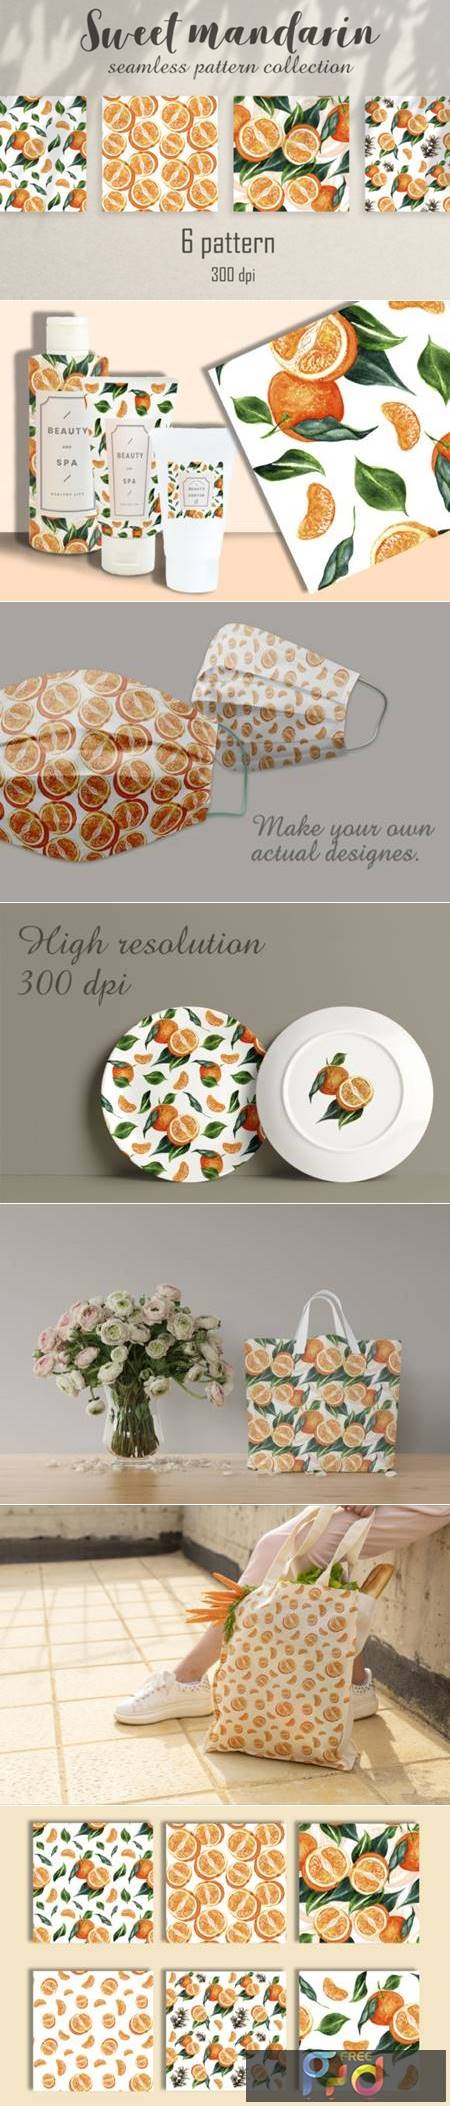 Seamless Watercolor Pattern Mandarins 6769714 1